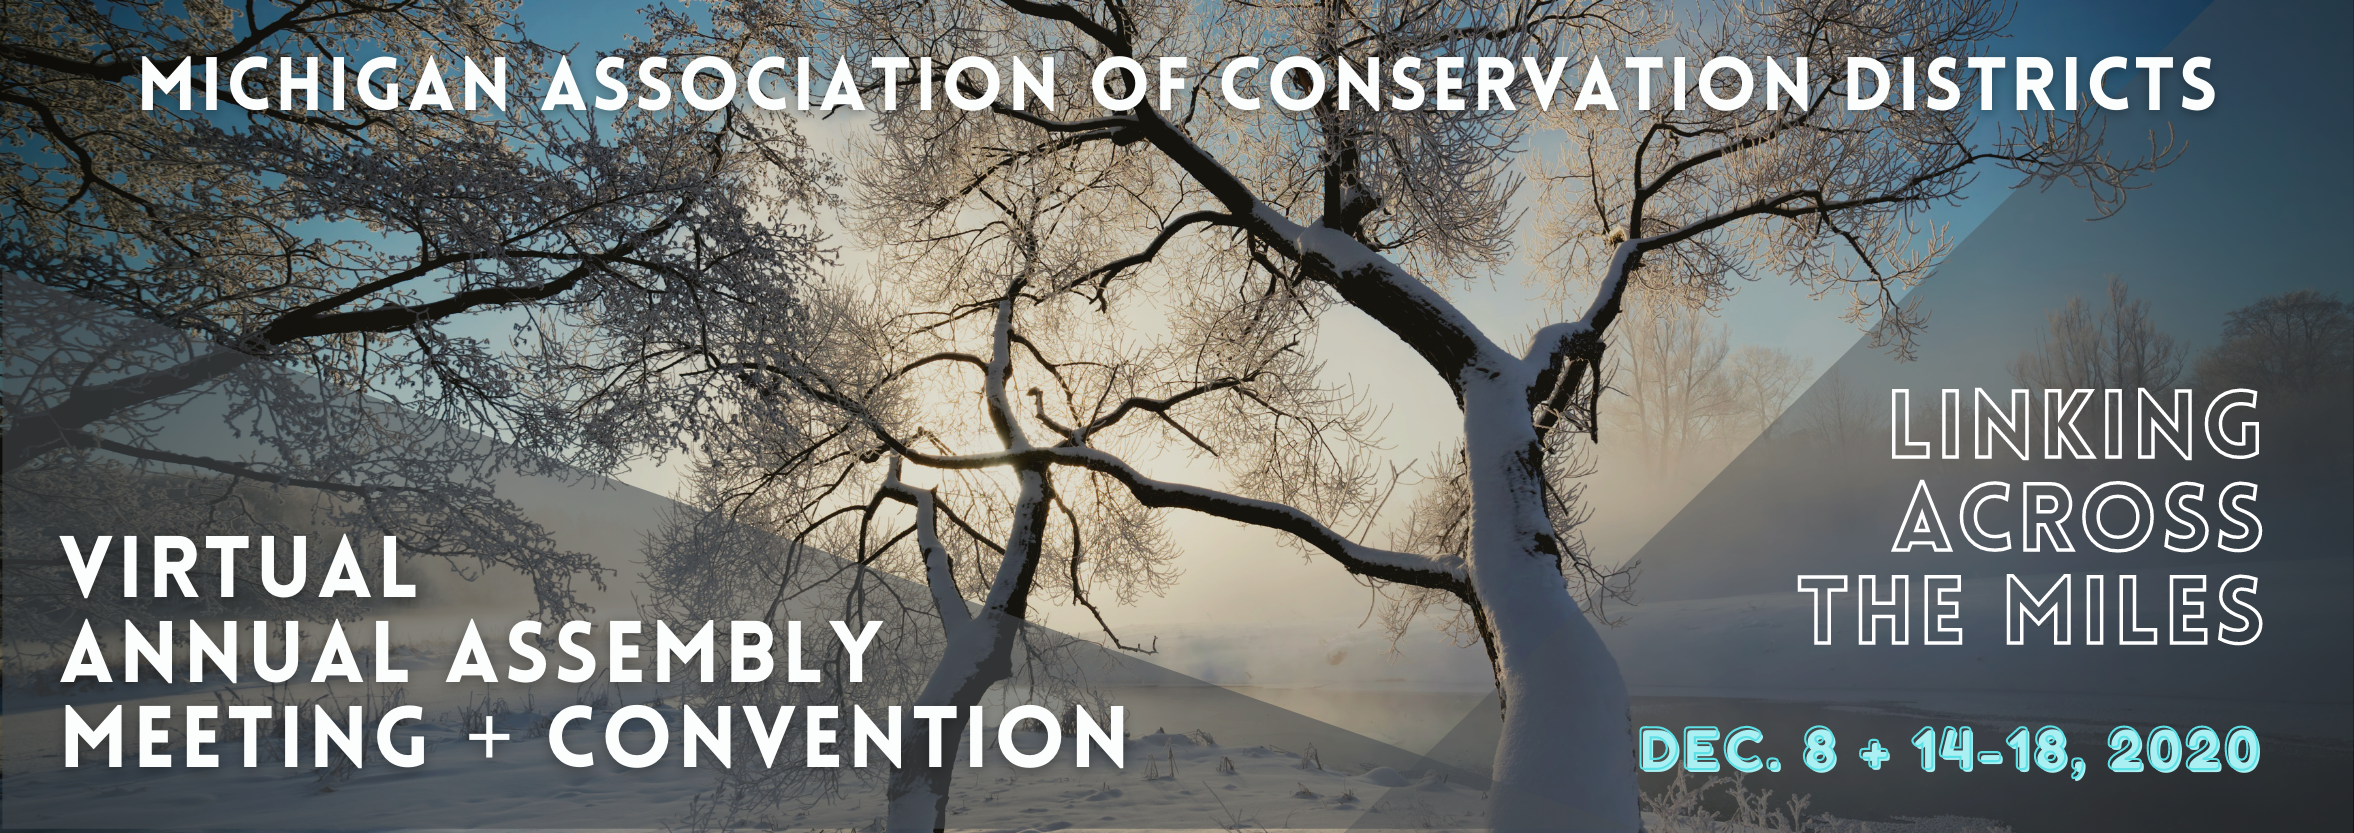 2020 Convention Banner